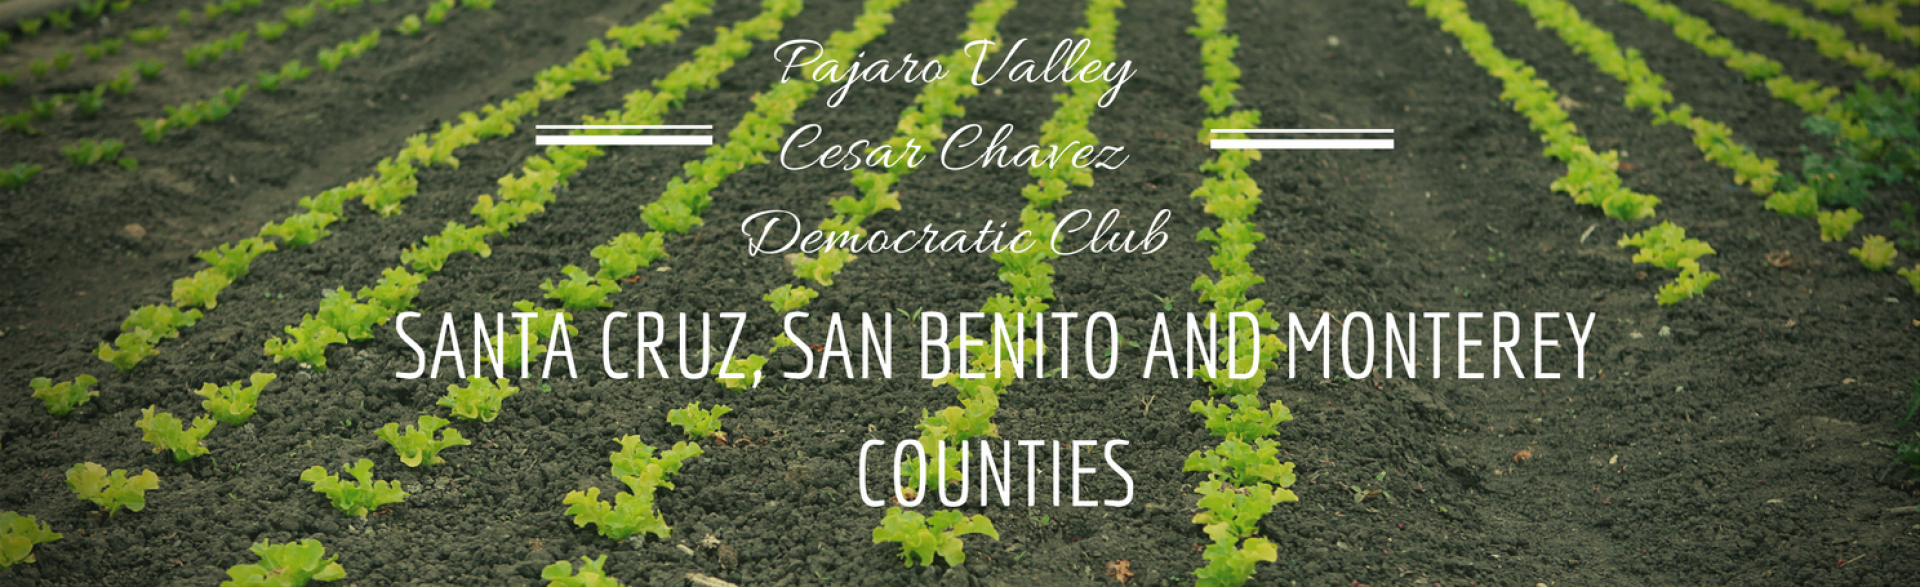 Pajaro Valley Cesar Chavez Democratic Club